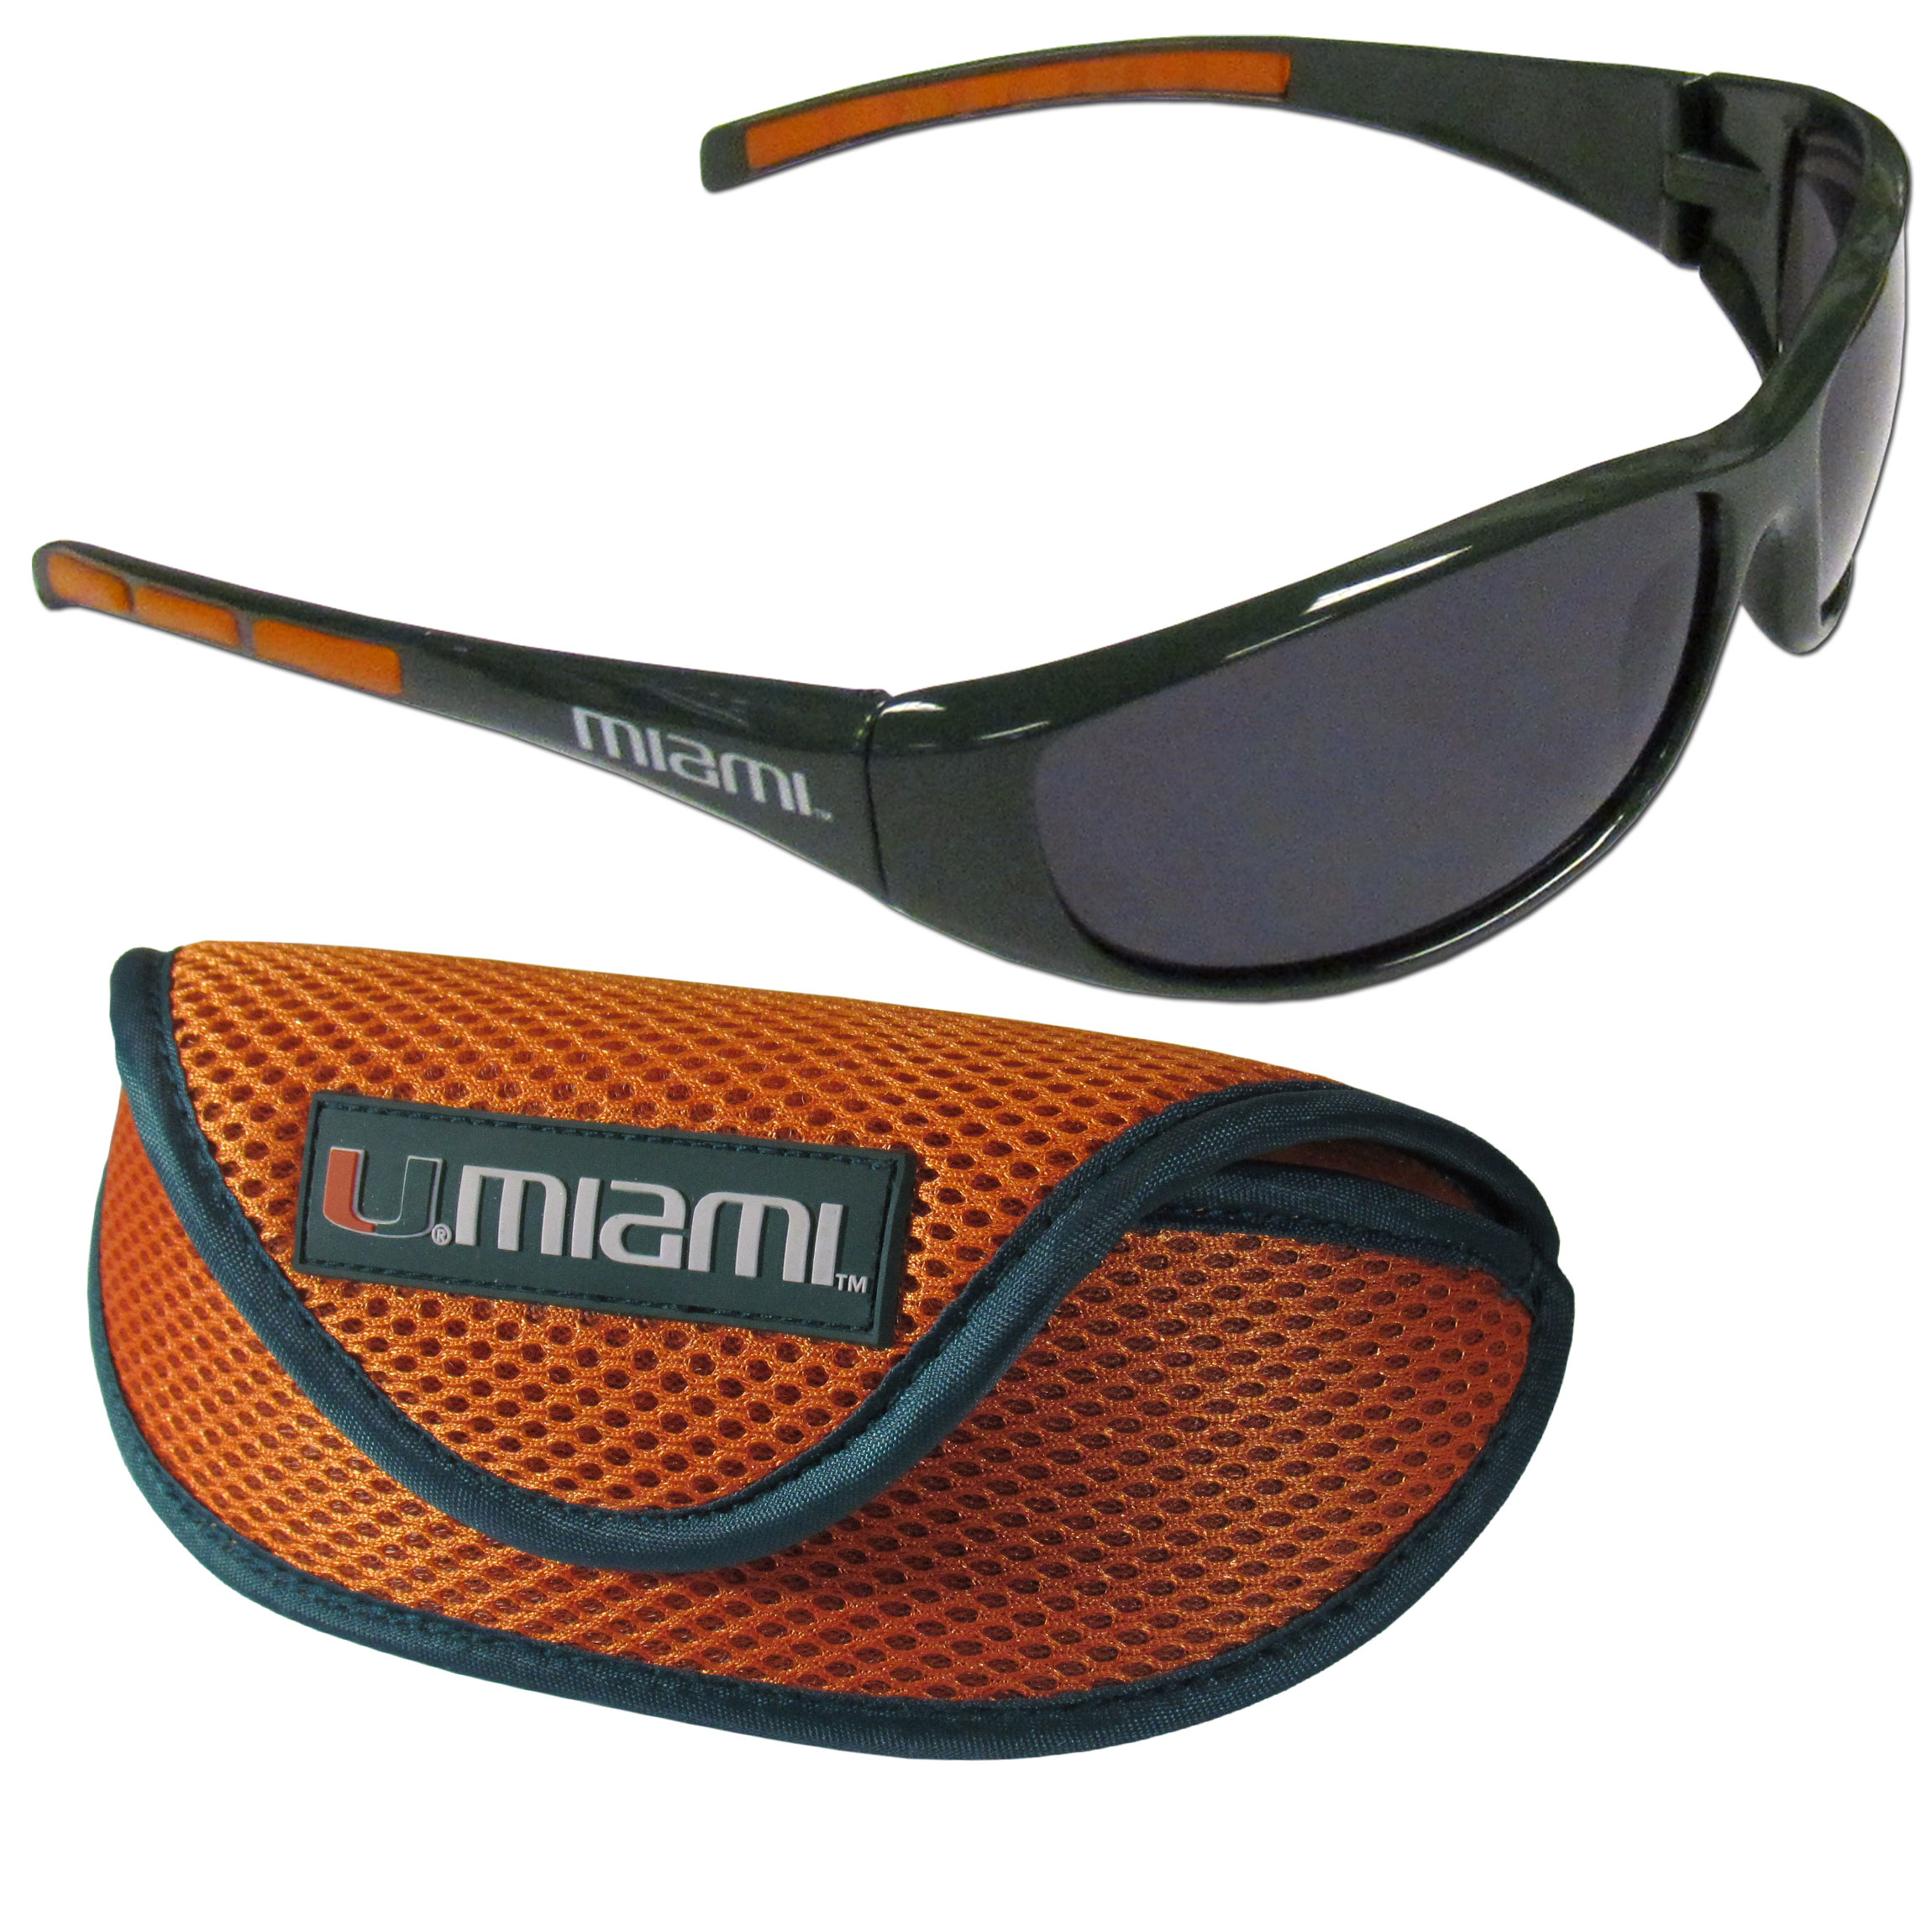 Miami Hurricanes Wrap Sunglass and Case Set - This great set includes a high quality pair of Miami Hurricanes wrap sunglasses and soft sport carrying case.